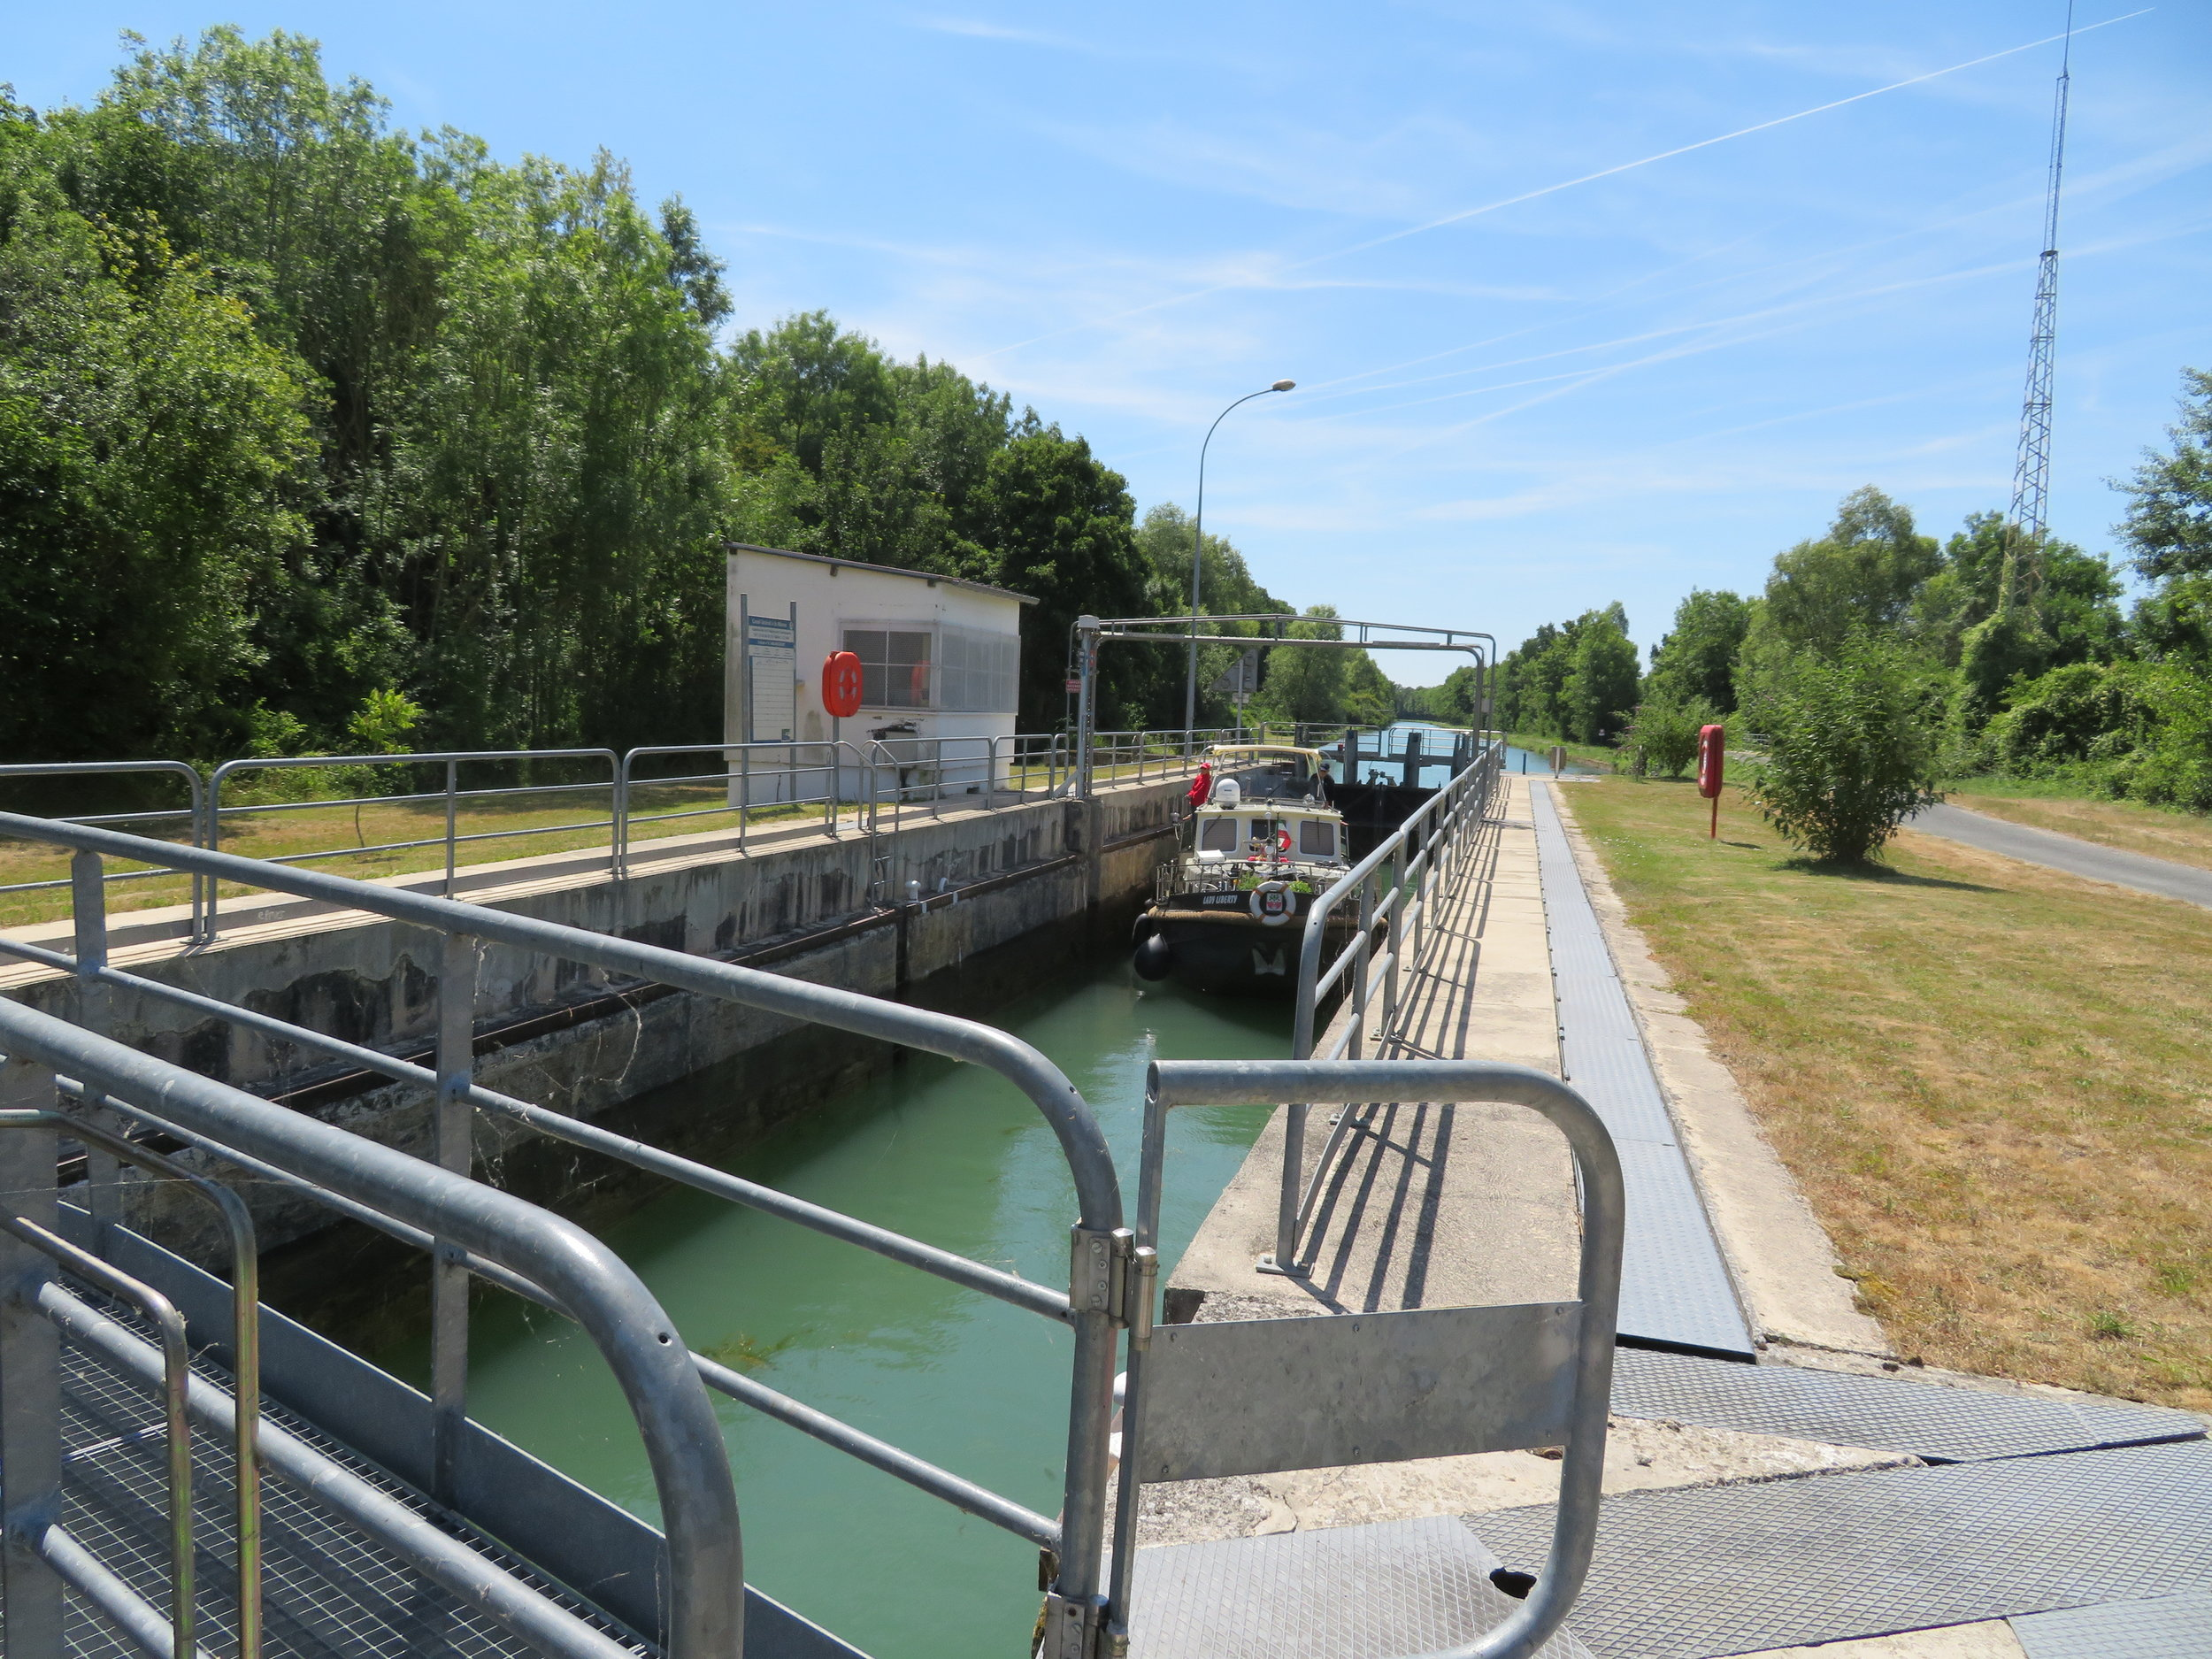 chatelraold-laChausee_operating the locks2.JPG